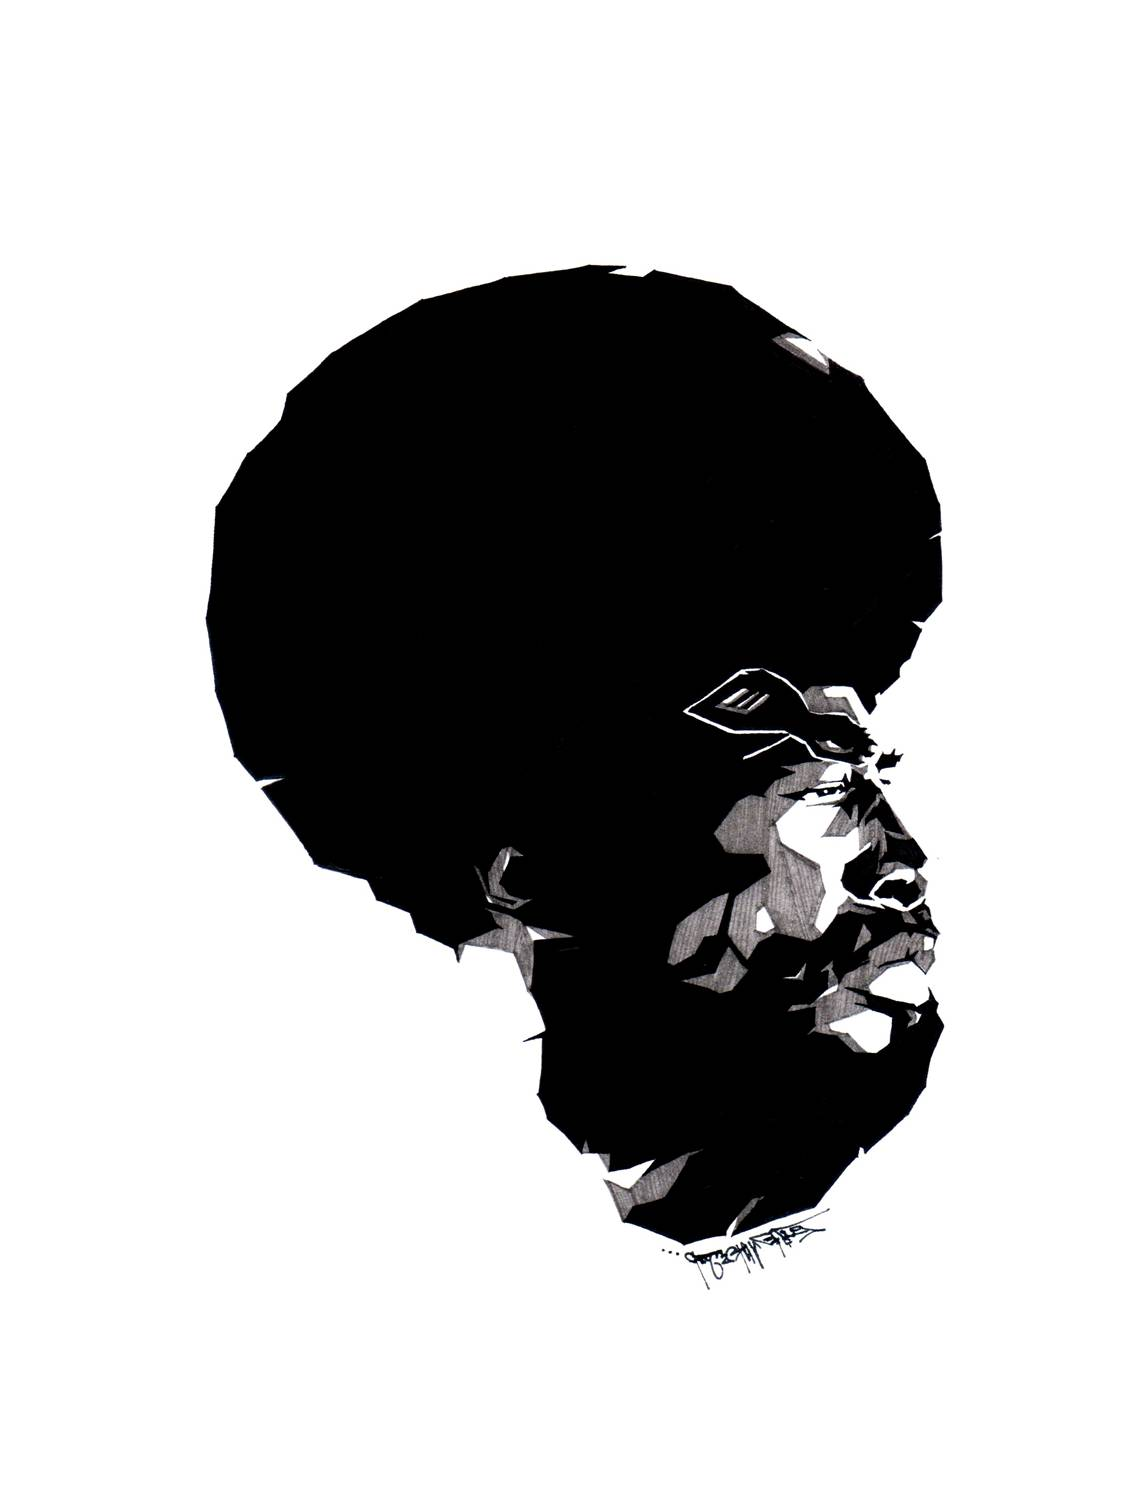 T-SHIRTS DESIGN for QUESTLOVE[THE ROOTS]